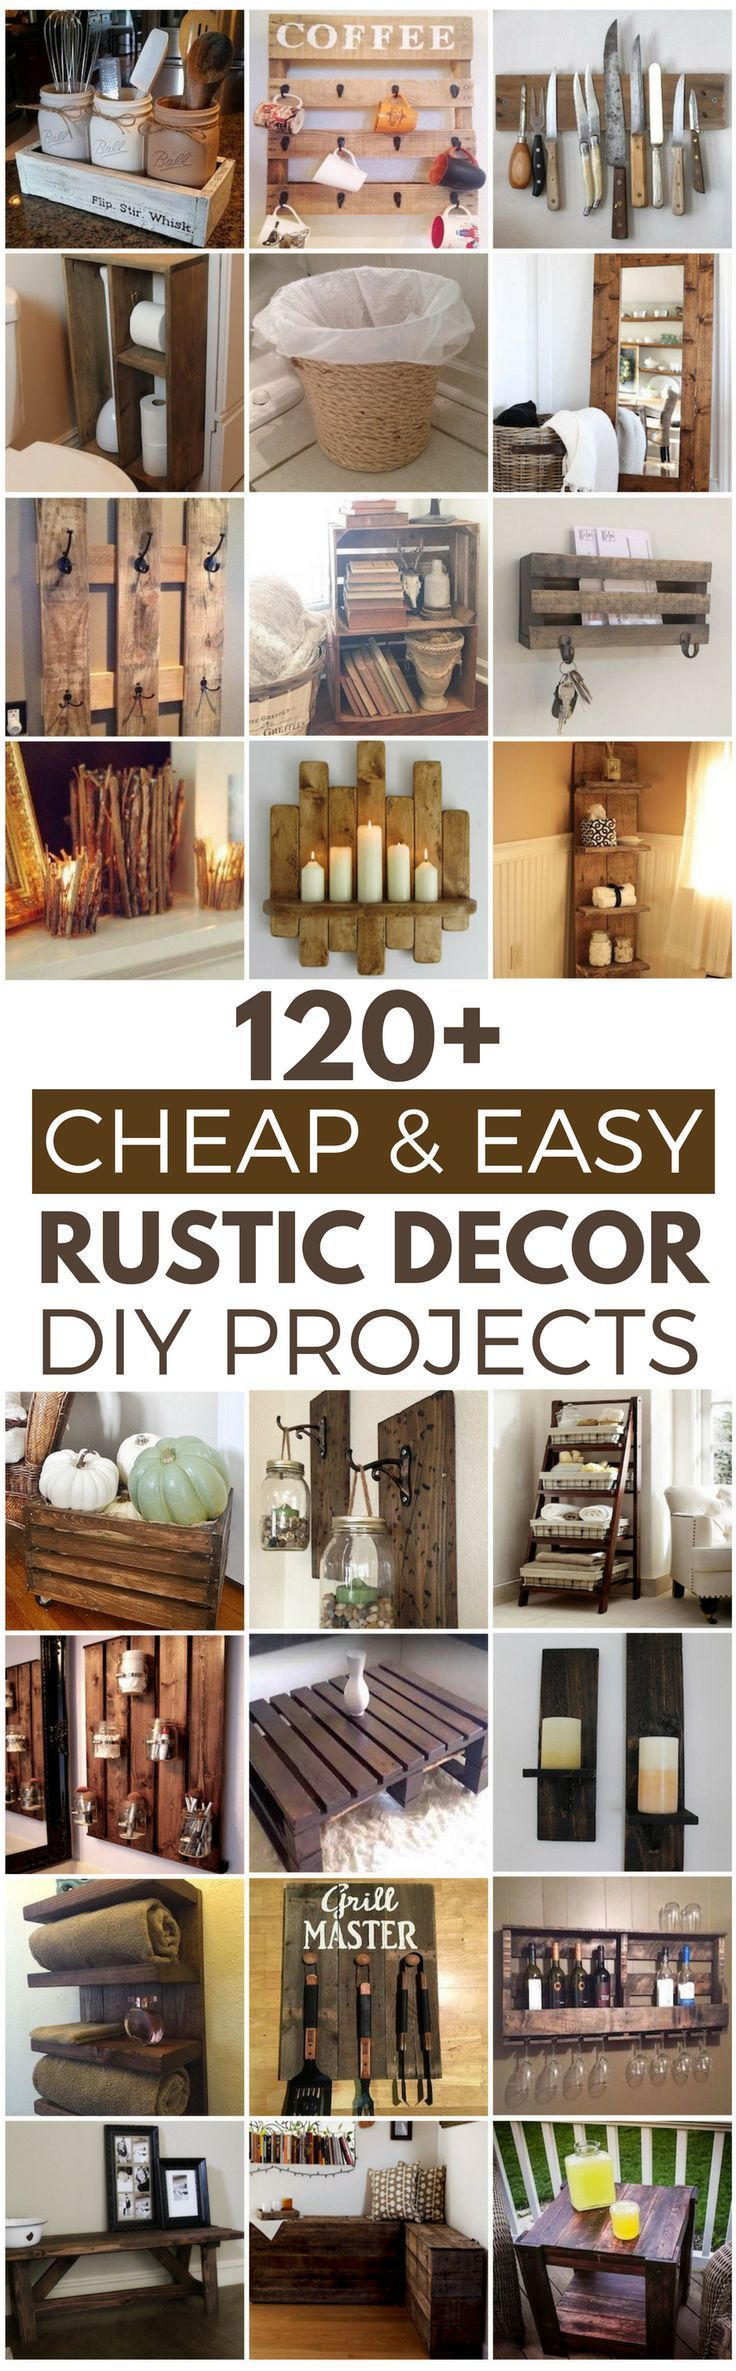 cheap and easy rustic diy home decor ideas also on  budget homedecoronabudget pinterest rh